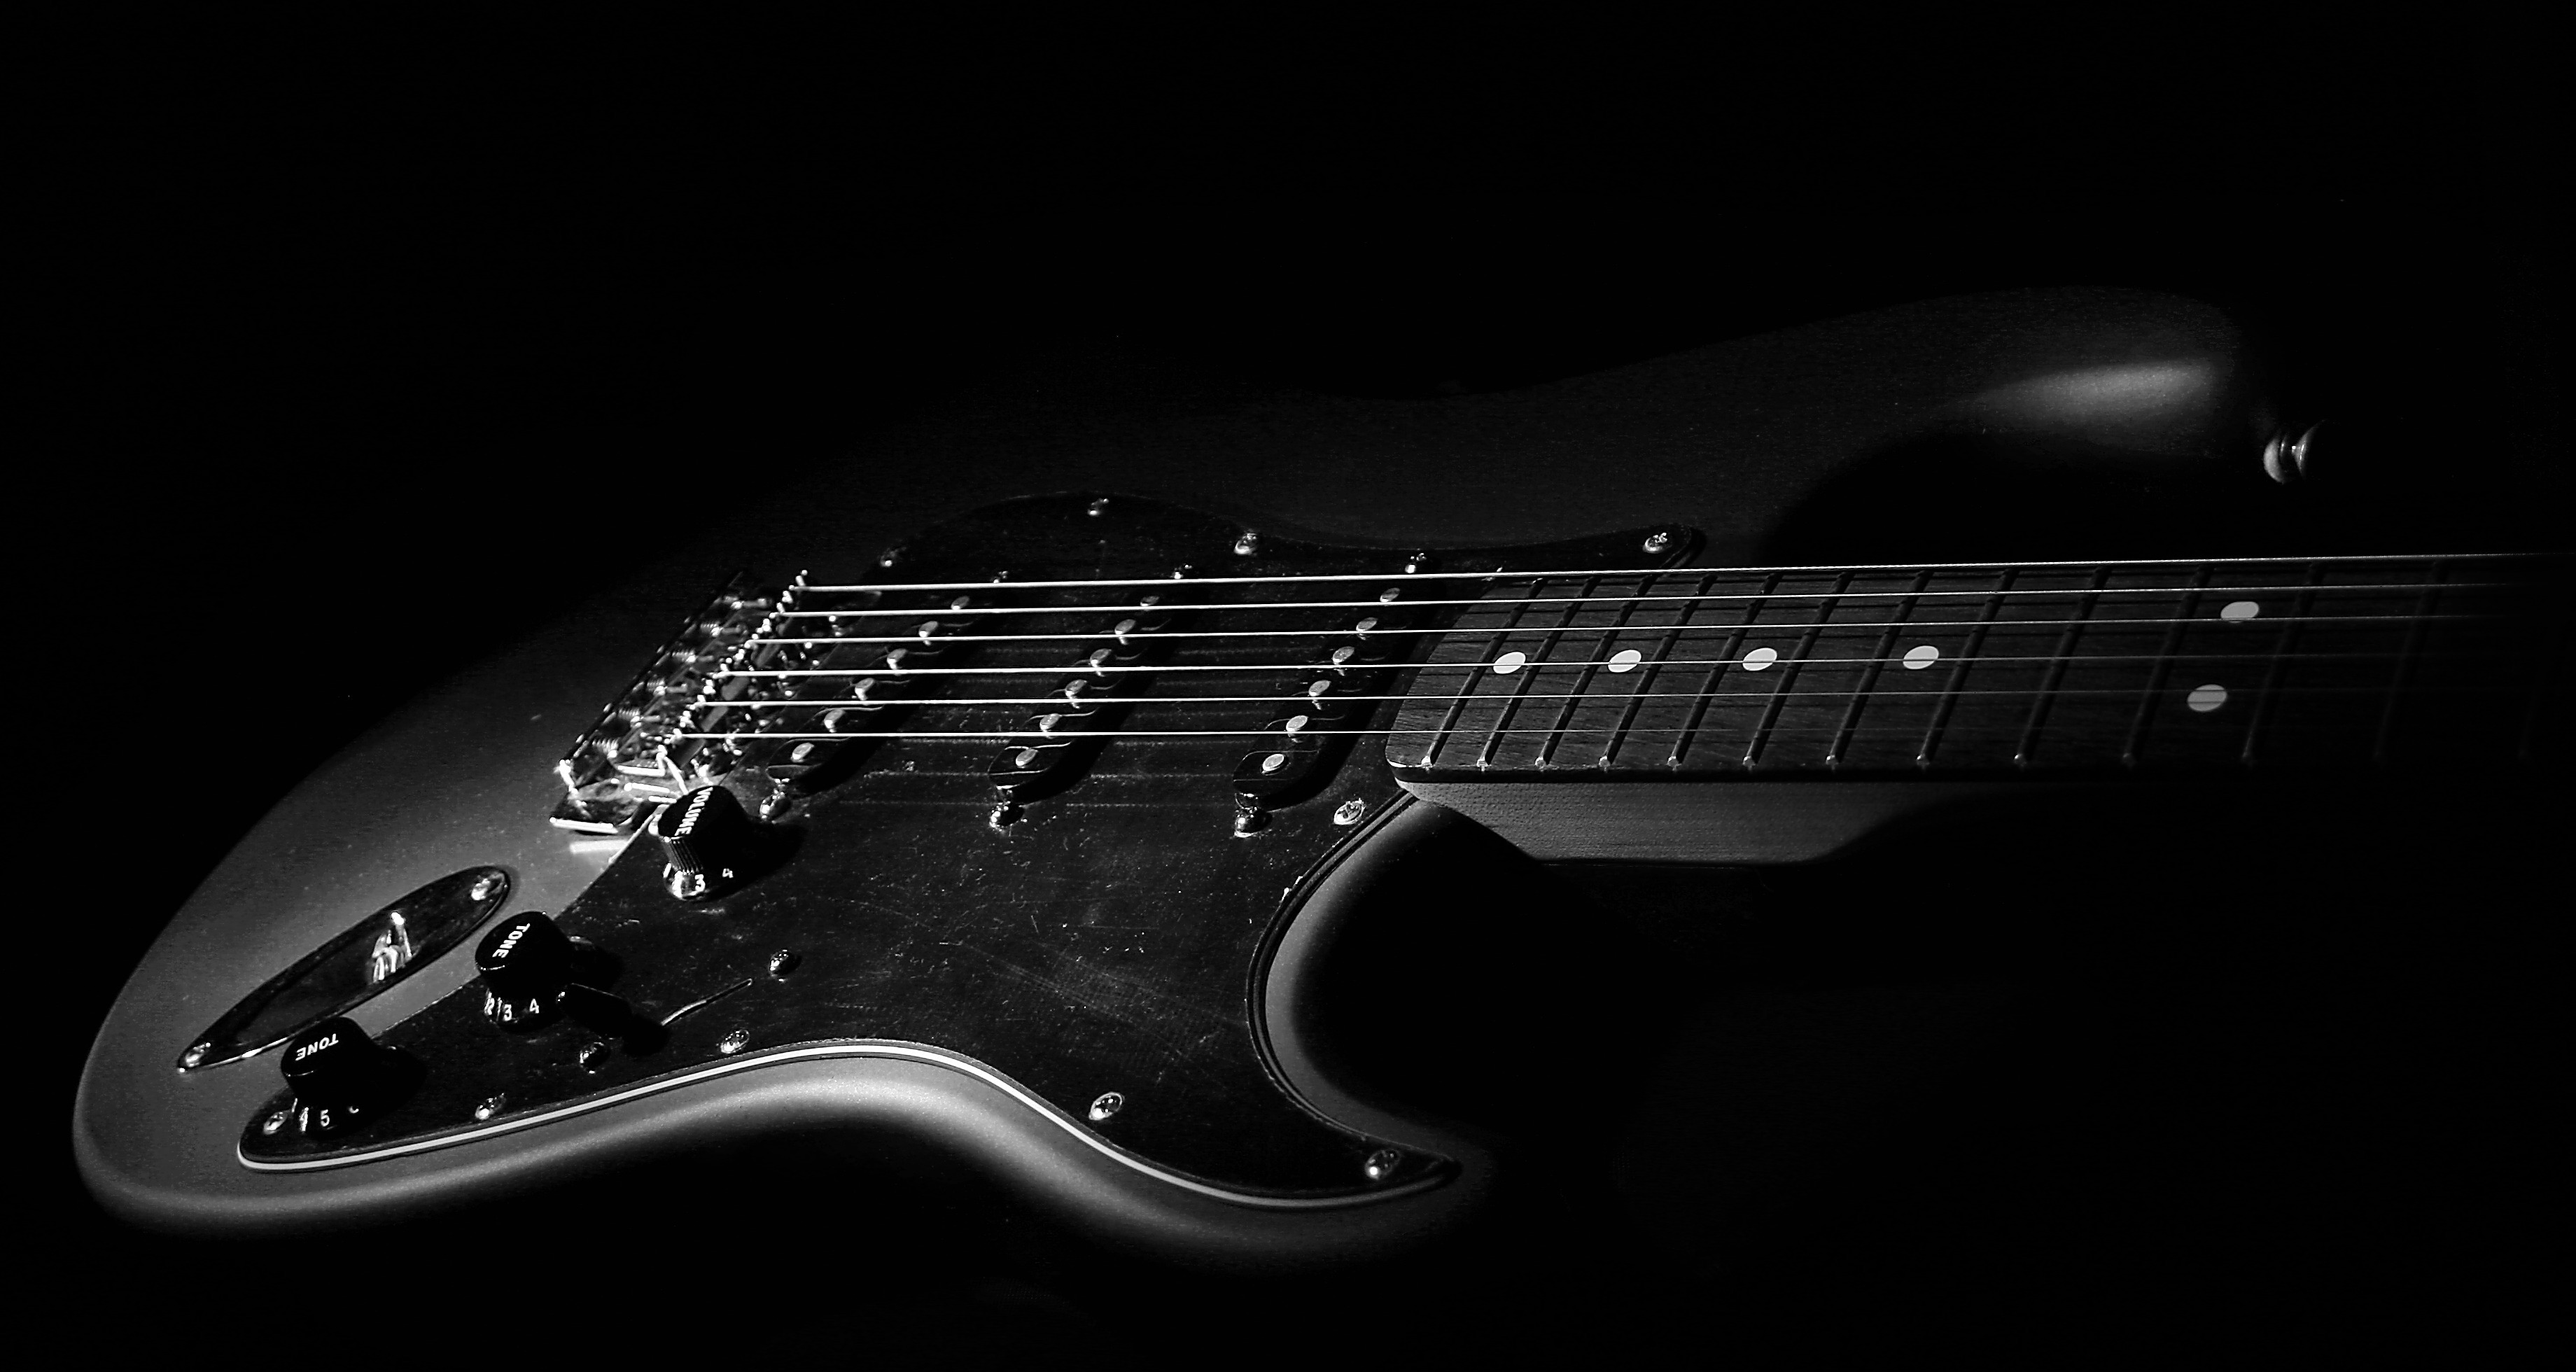 Fender Strat Wallpaper Release date Specs Review Redesign and 3680x1960